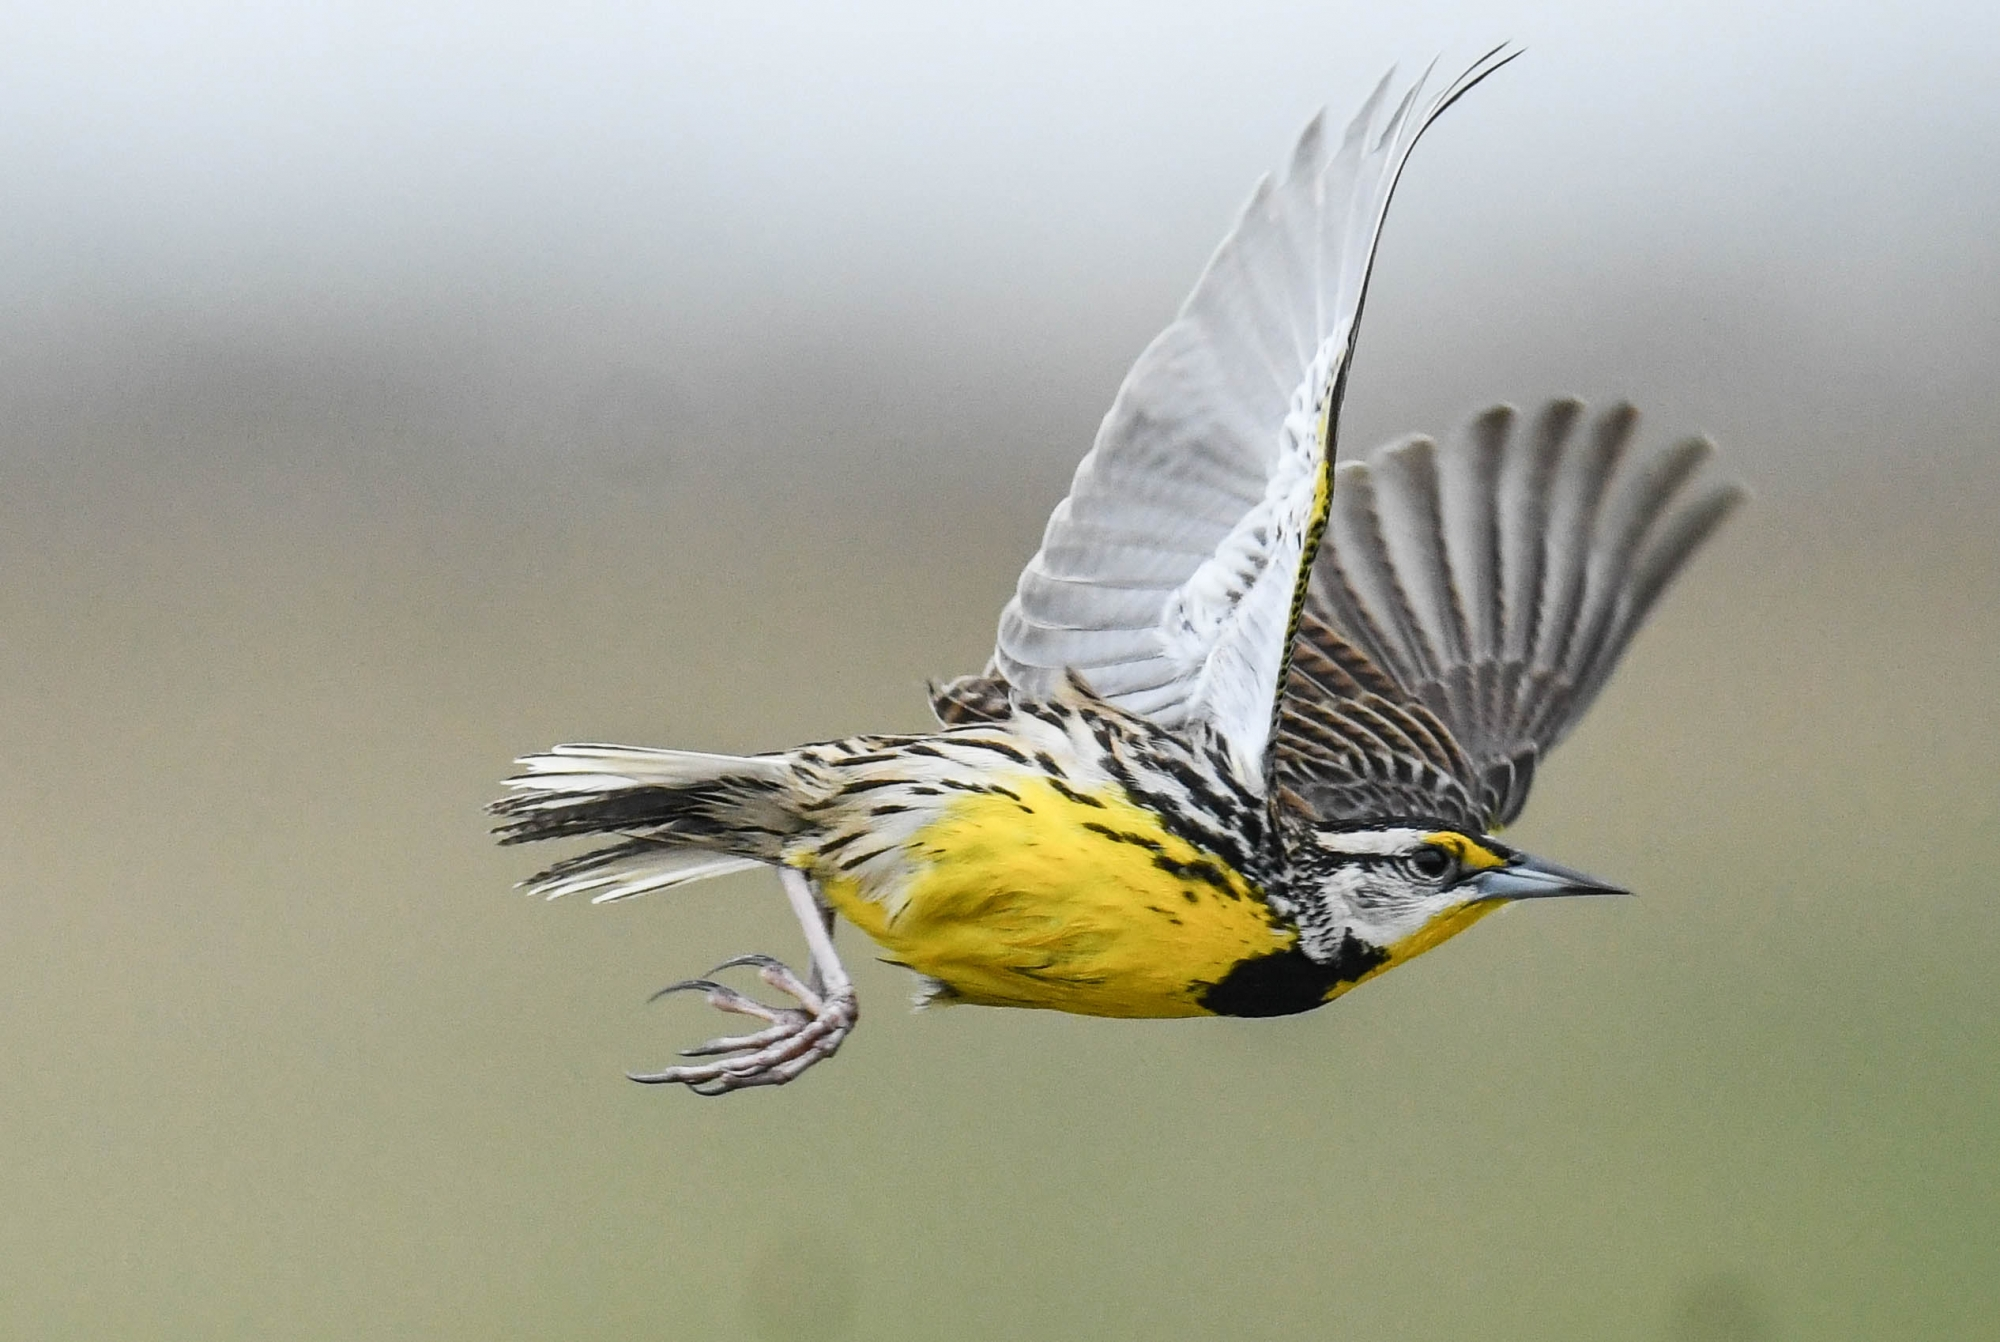 A speedy Meadowlark near Lake Kissimmee, Florida